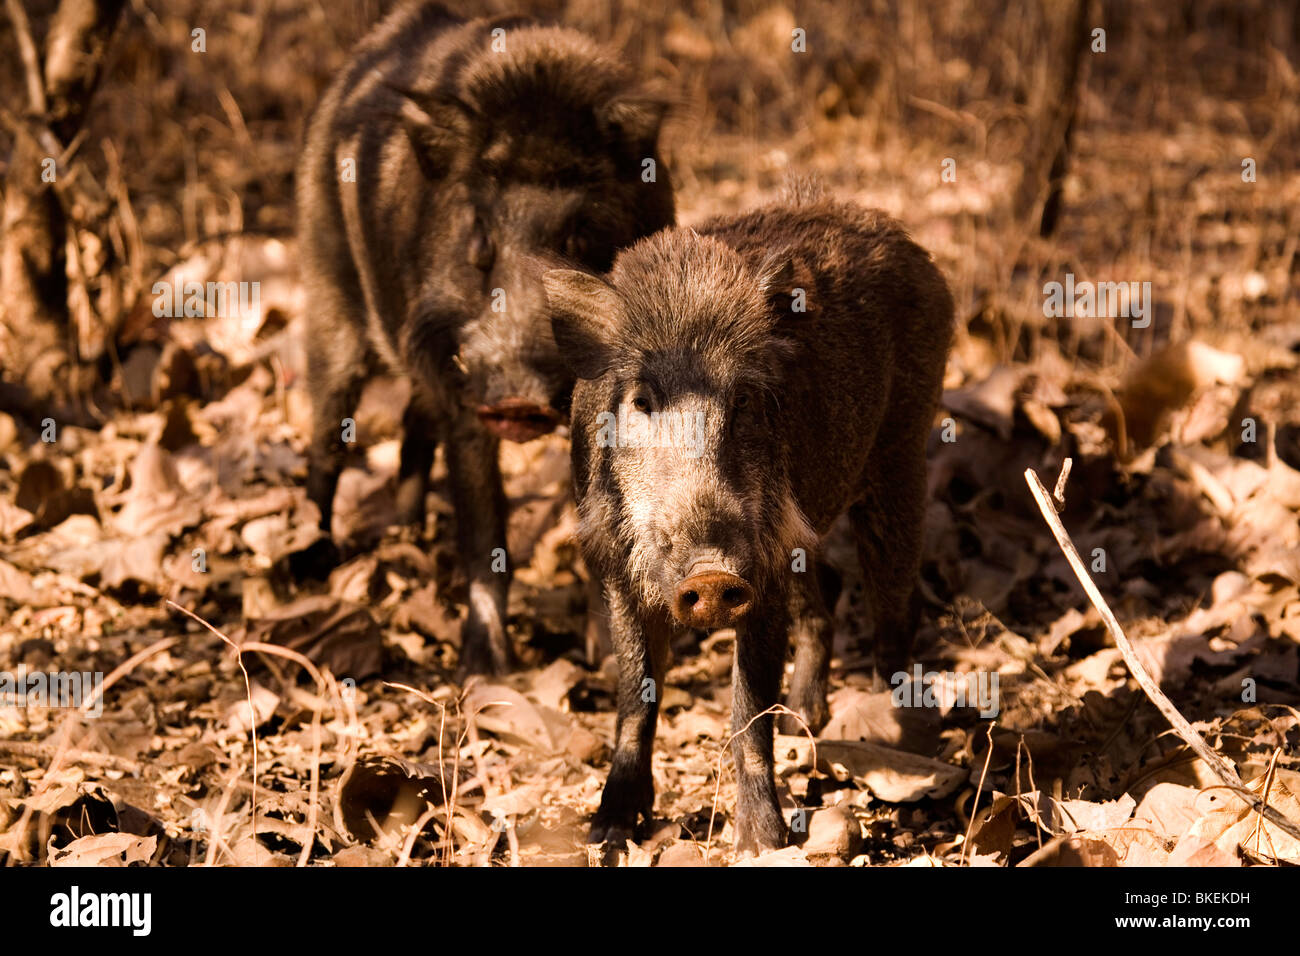 Wild Boars stand on dry foliage in Sasan Gir National Park, Gujarat, India. - Stock Image